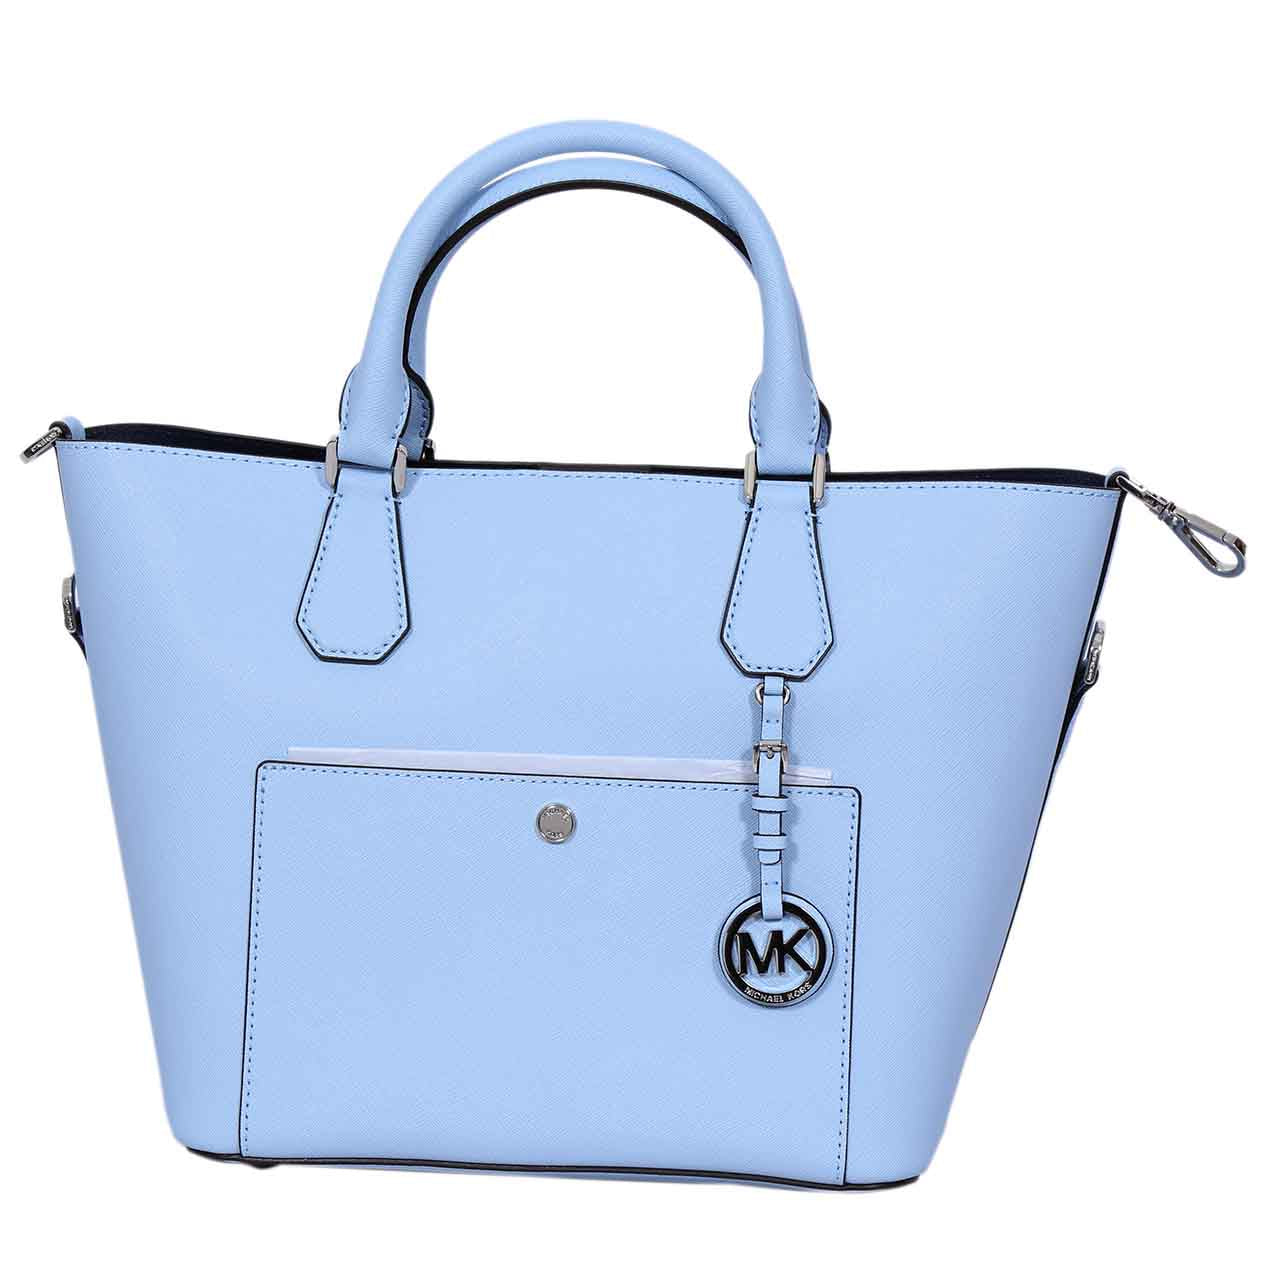 MICHAEL KORS GREENWICH   LARGE SHOULDER TOTE BAG